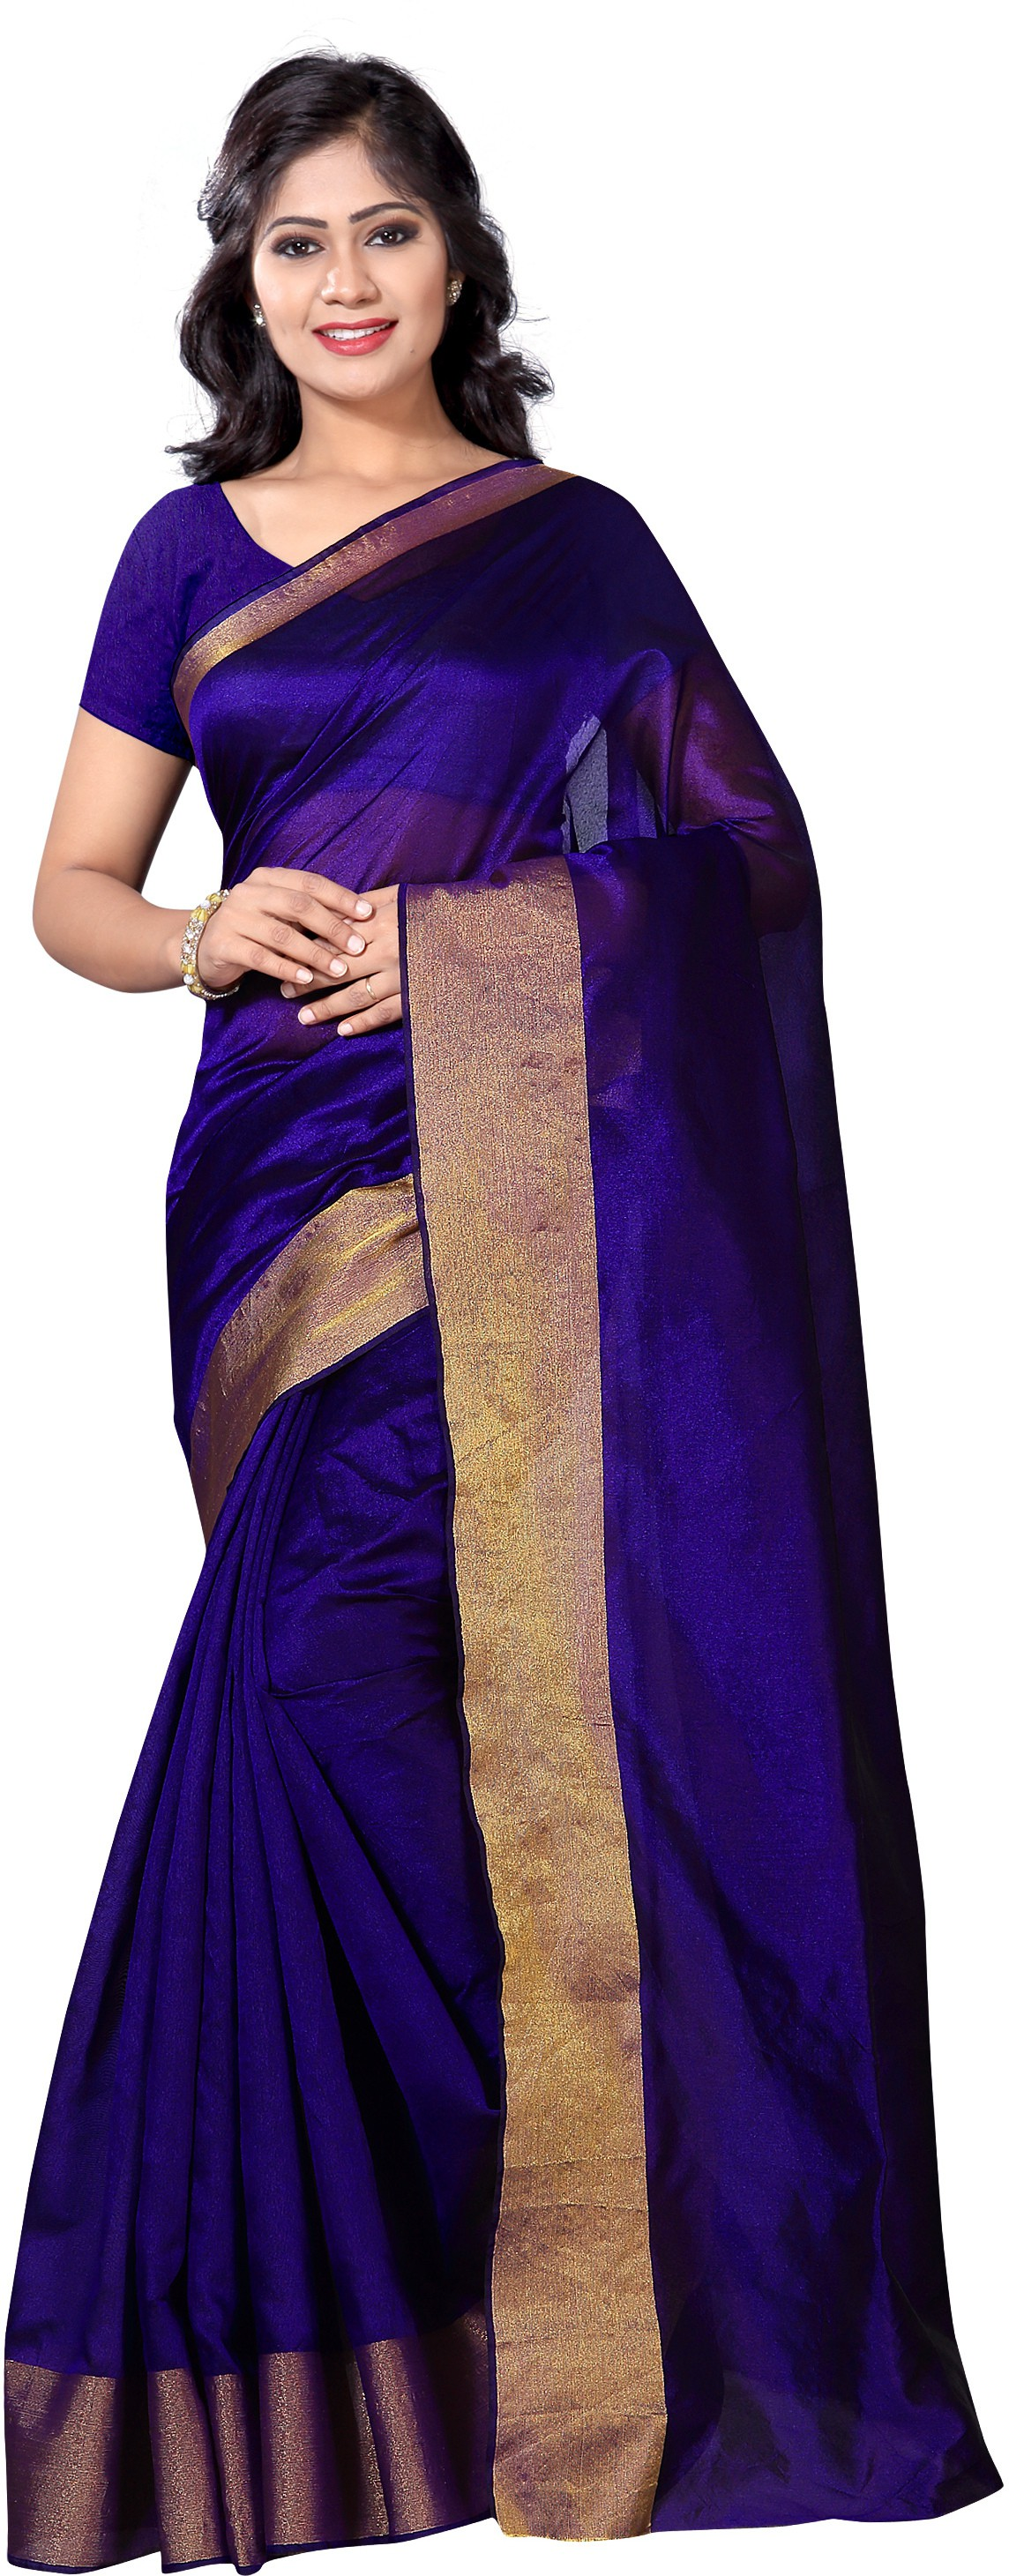 Deals - Noida - Mysore Silk Sarees <br> Indulge in ethnic<br> Category - clothing<br> Business - Flipkart.com